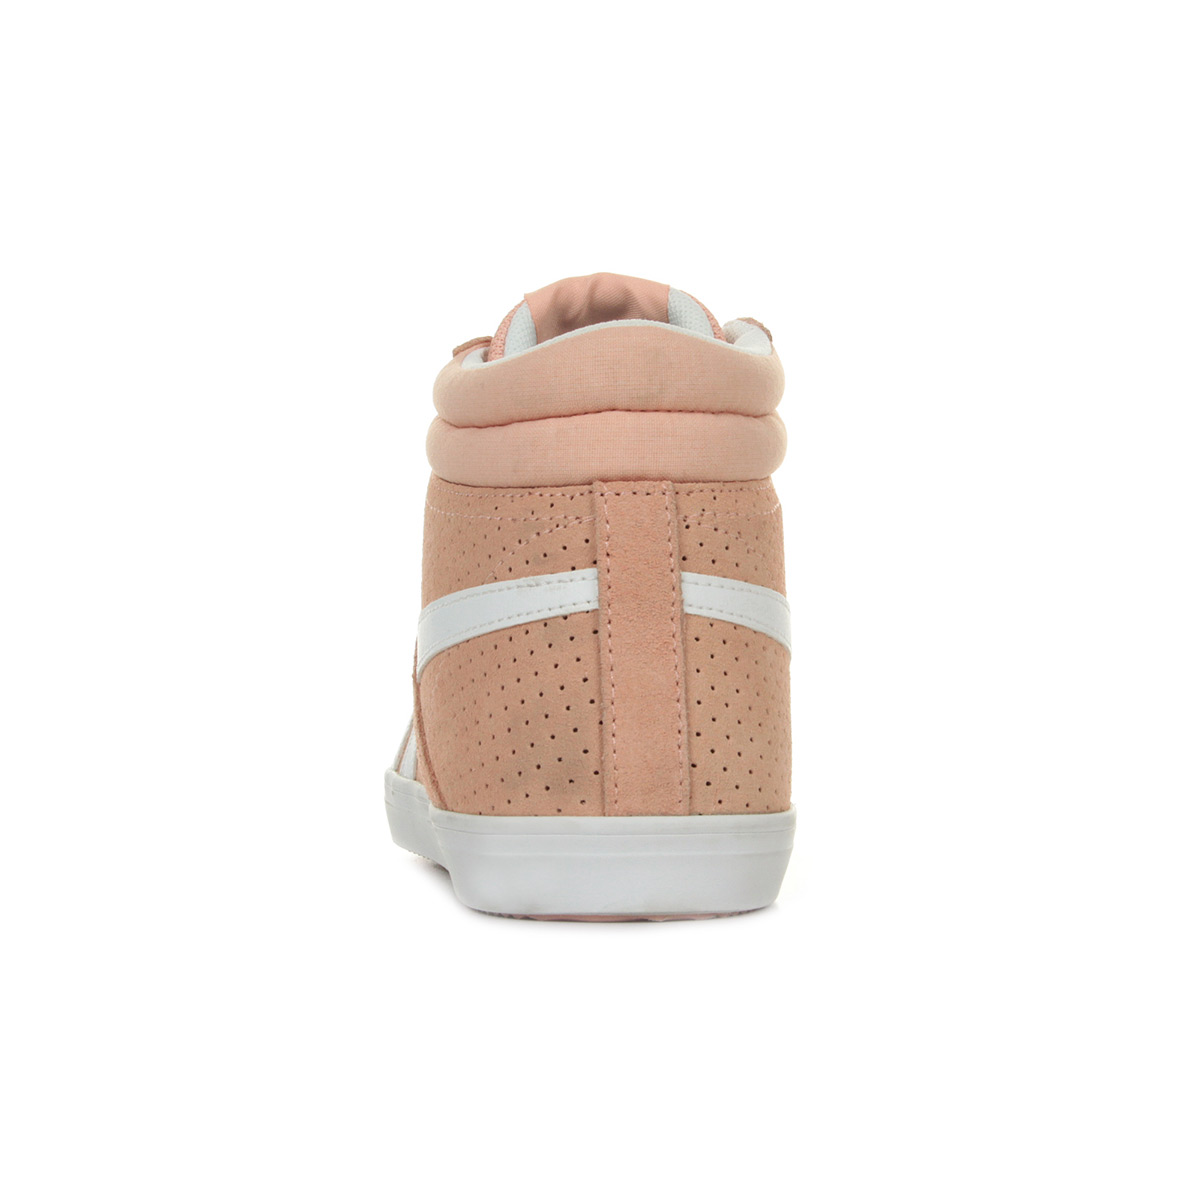 Reebok Baskets Femme Taille Cuir Royal Rose Chaussures Suede Aspire 1qT51wd